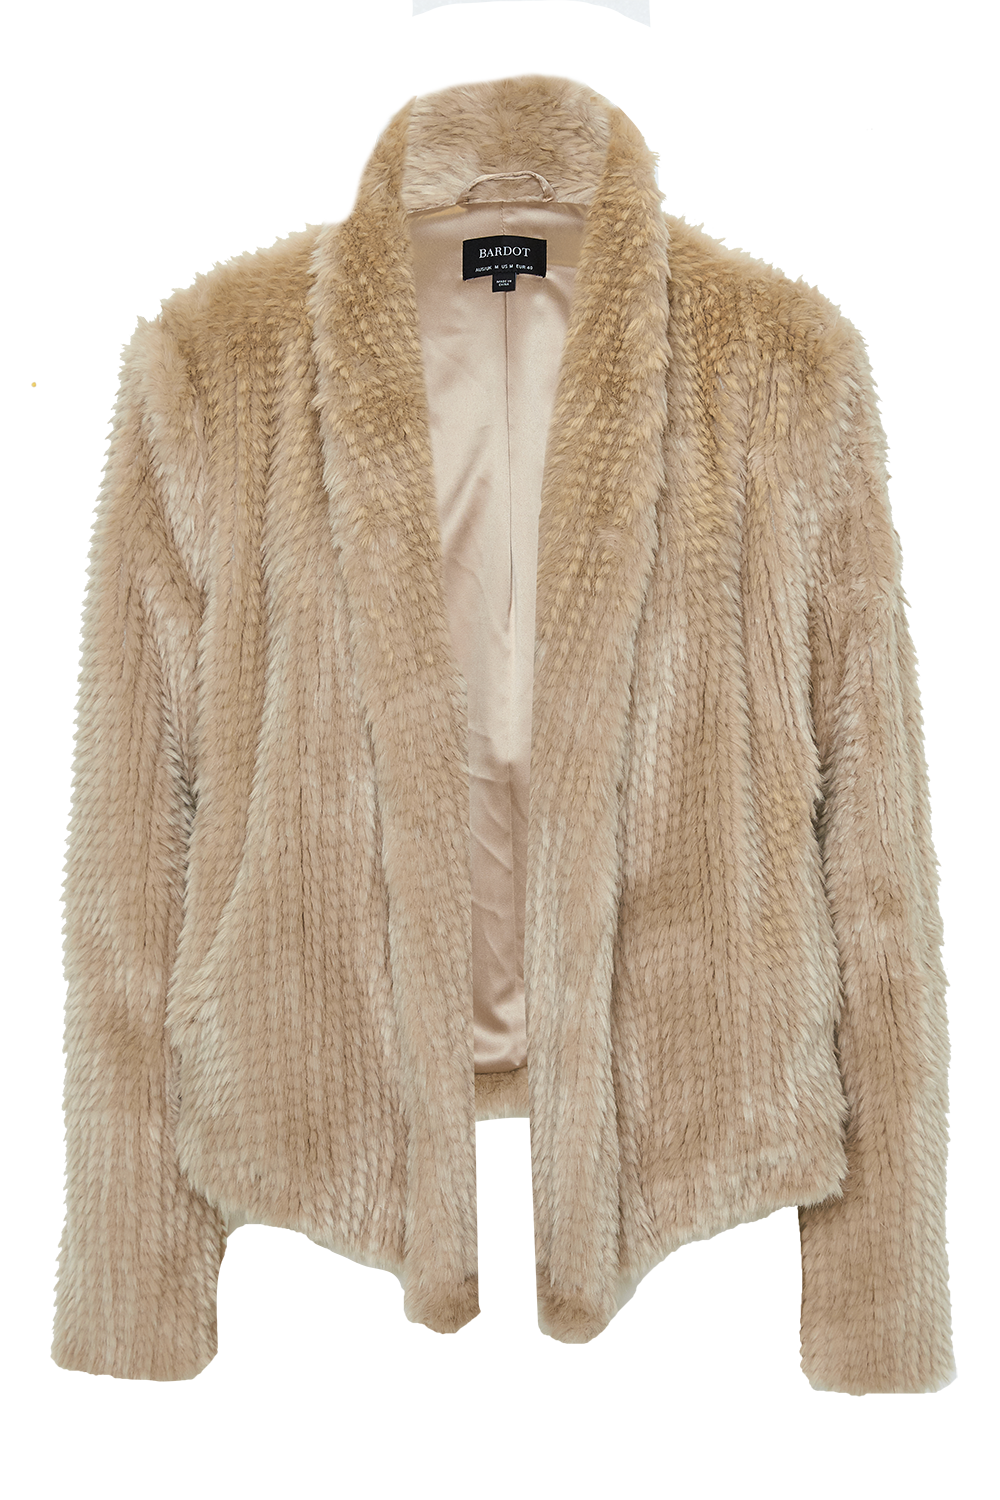 WATERFALL FAUX FUR JACKET in colour TAPIOCA